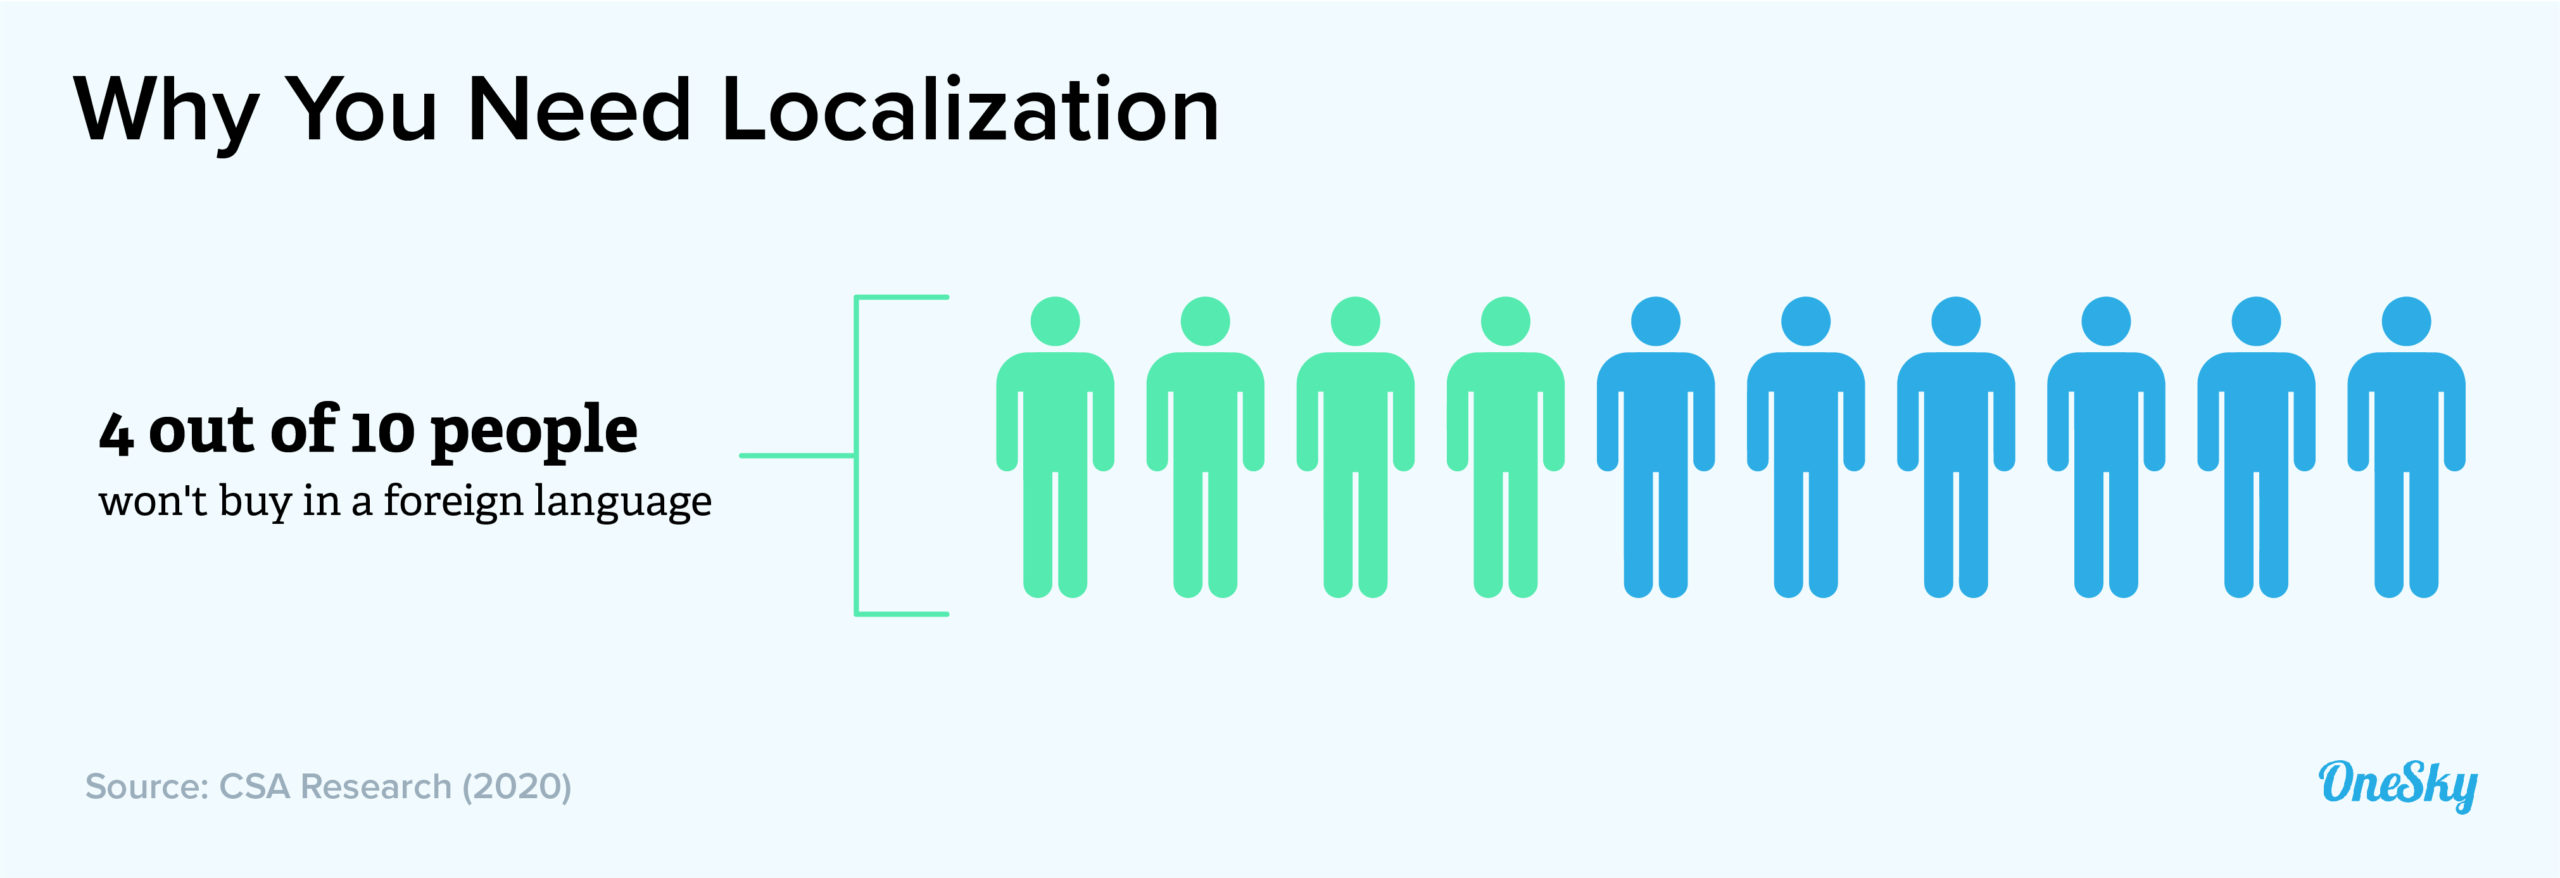 What Are the Benefits of Localization?